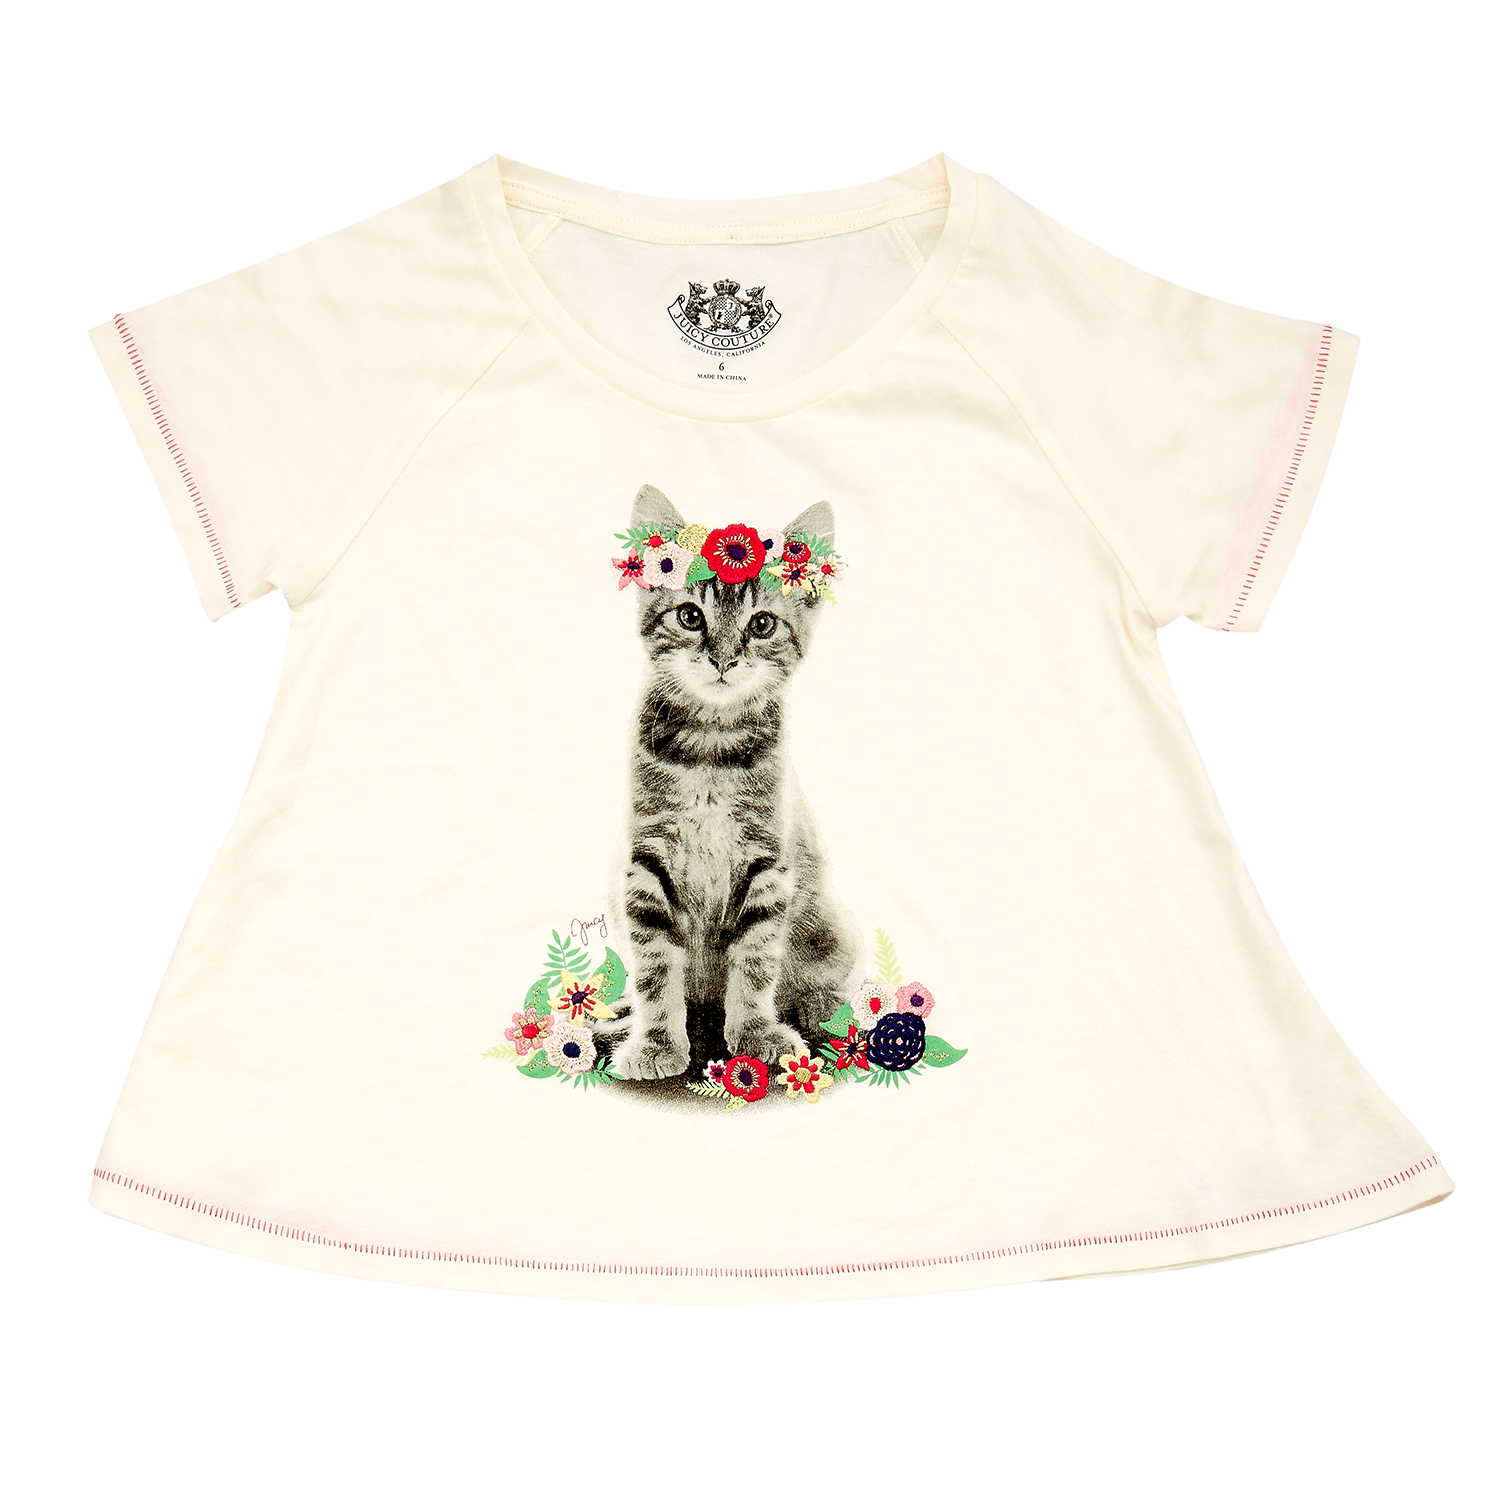 JUICY COUTURE KIDS - Παιδική μπλούζα JUICY COUTURE ροζ